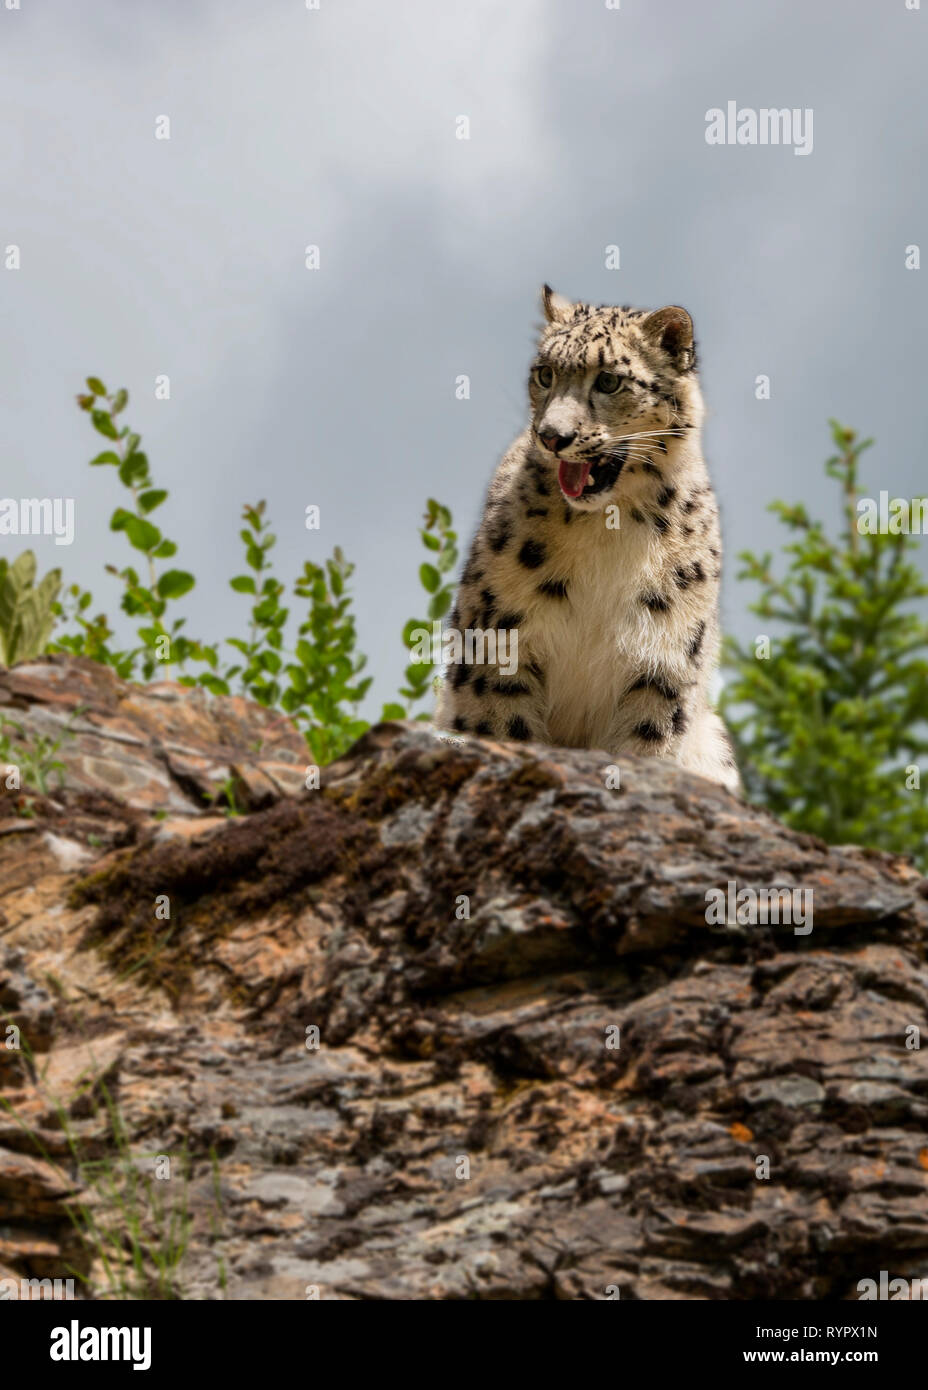 Ferocious Snow Leopard Stock Photo